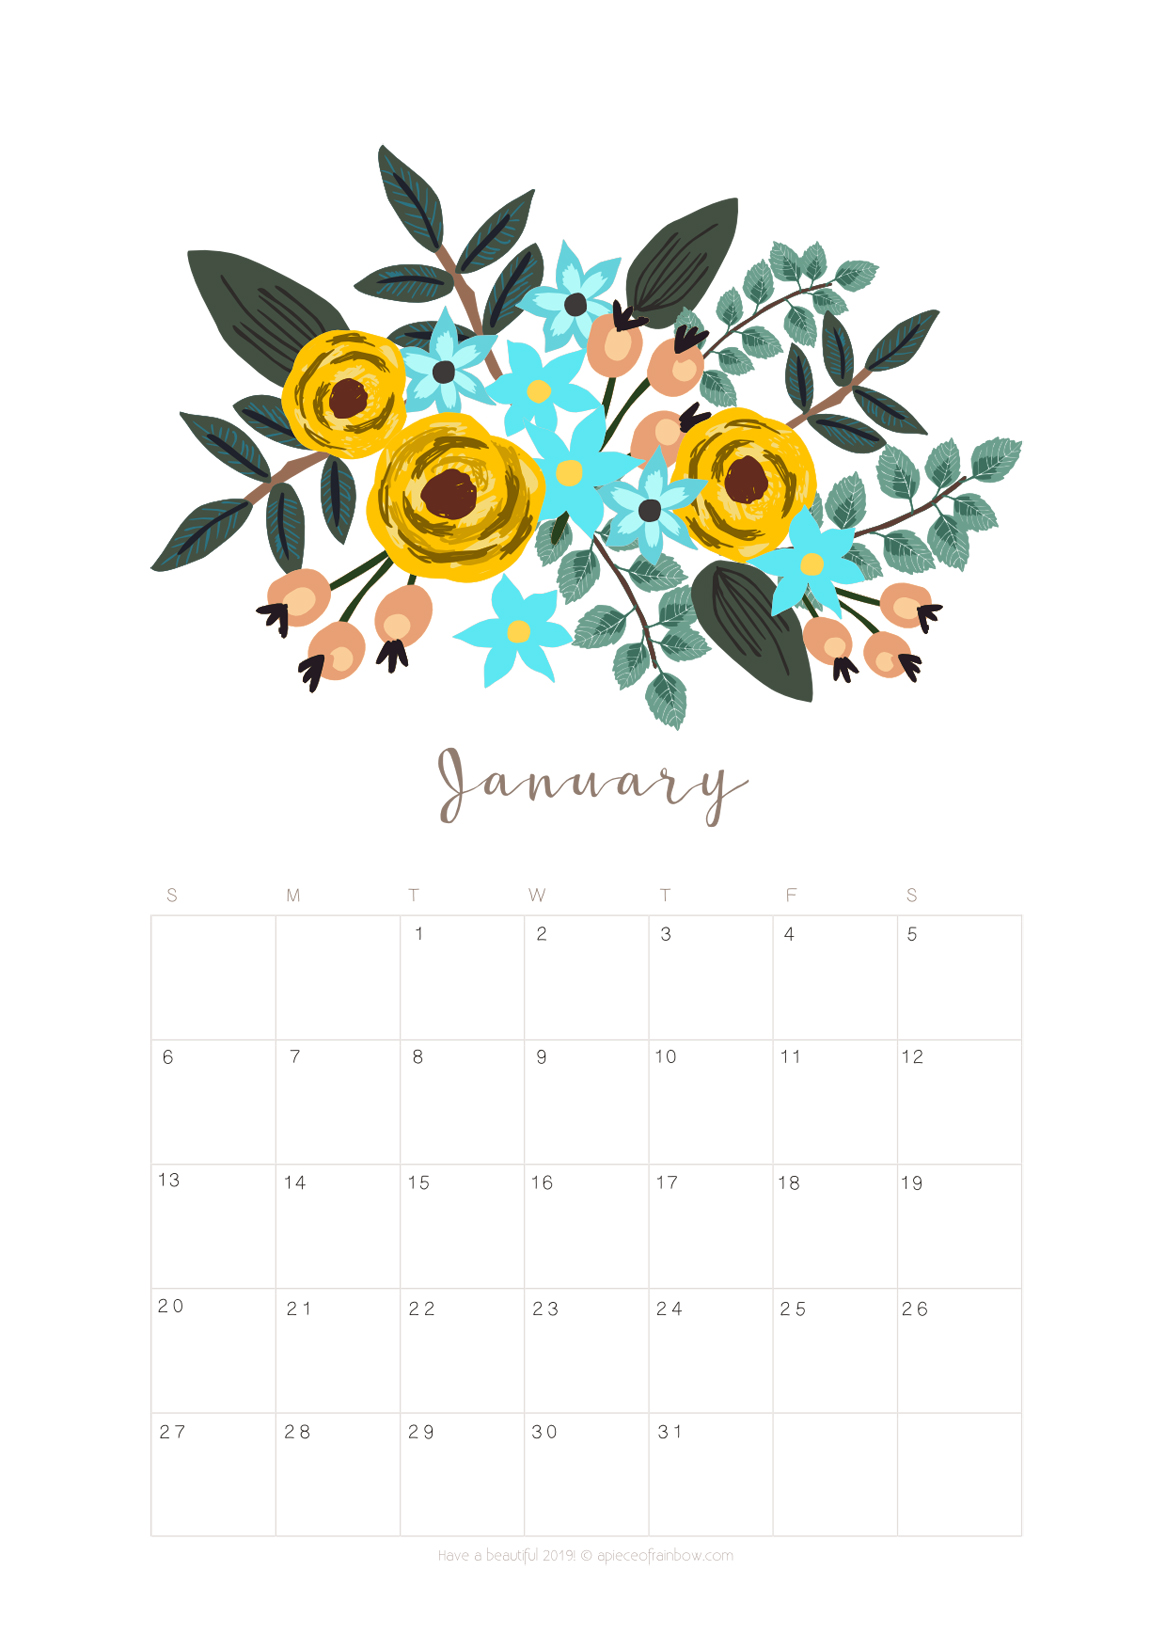 January 2019 Floral Calendar Free Printable Printable January 2019 Calendar Monthly Planner {2 Designs